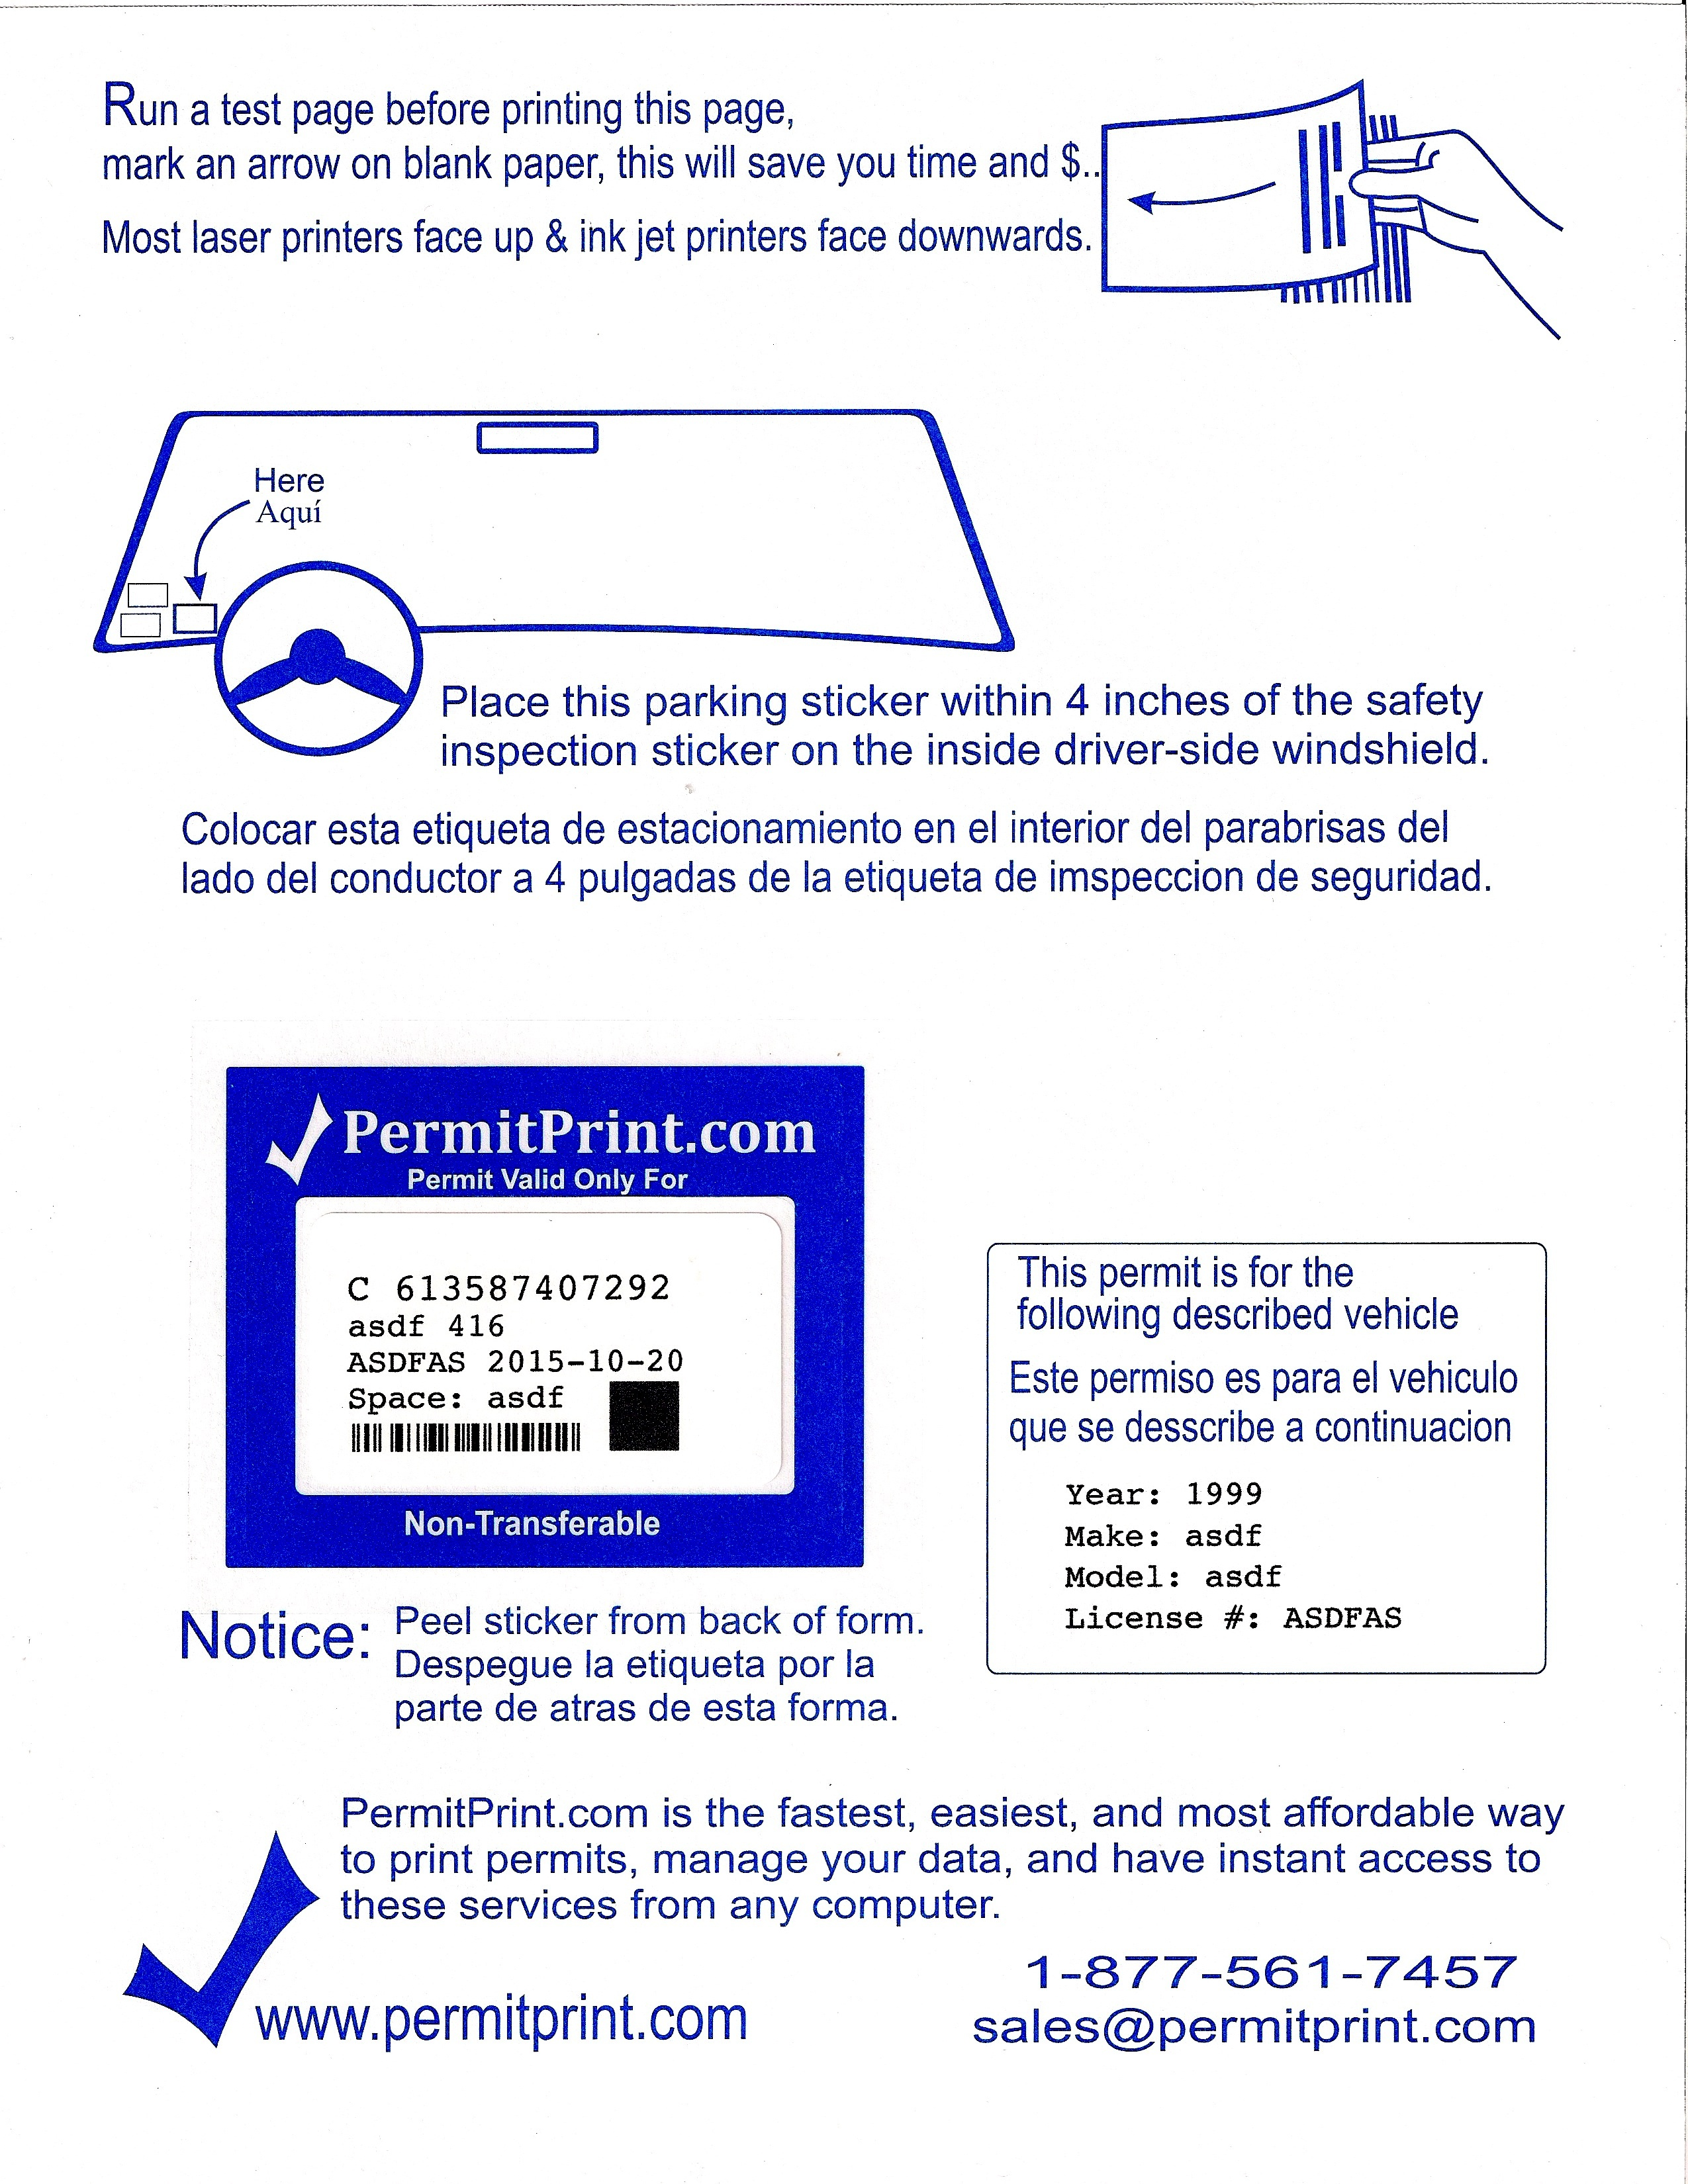 Permitprint | Parking Permits Made Easy - Free Printable Parking Permits